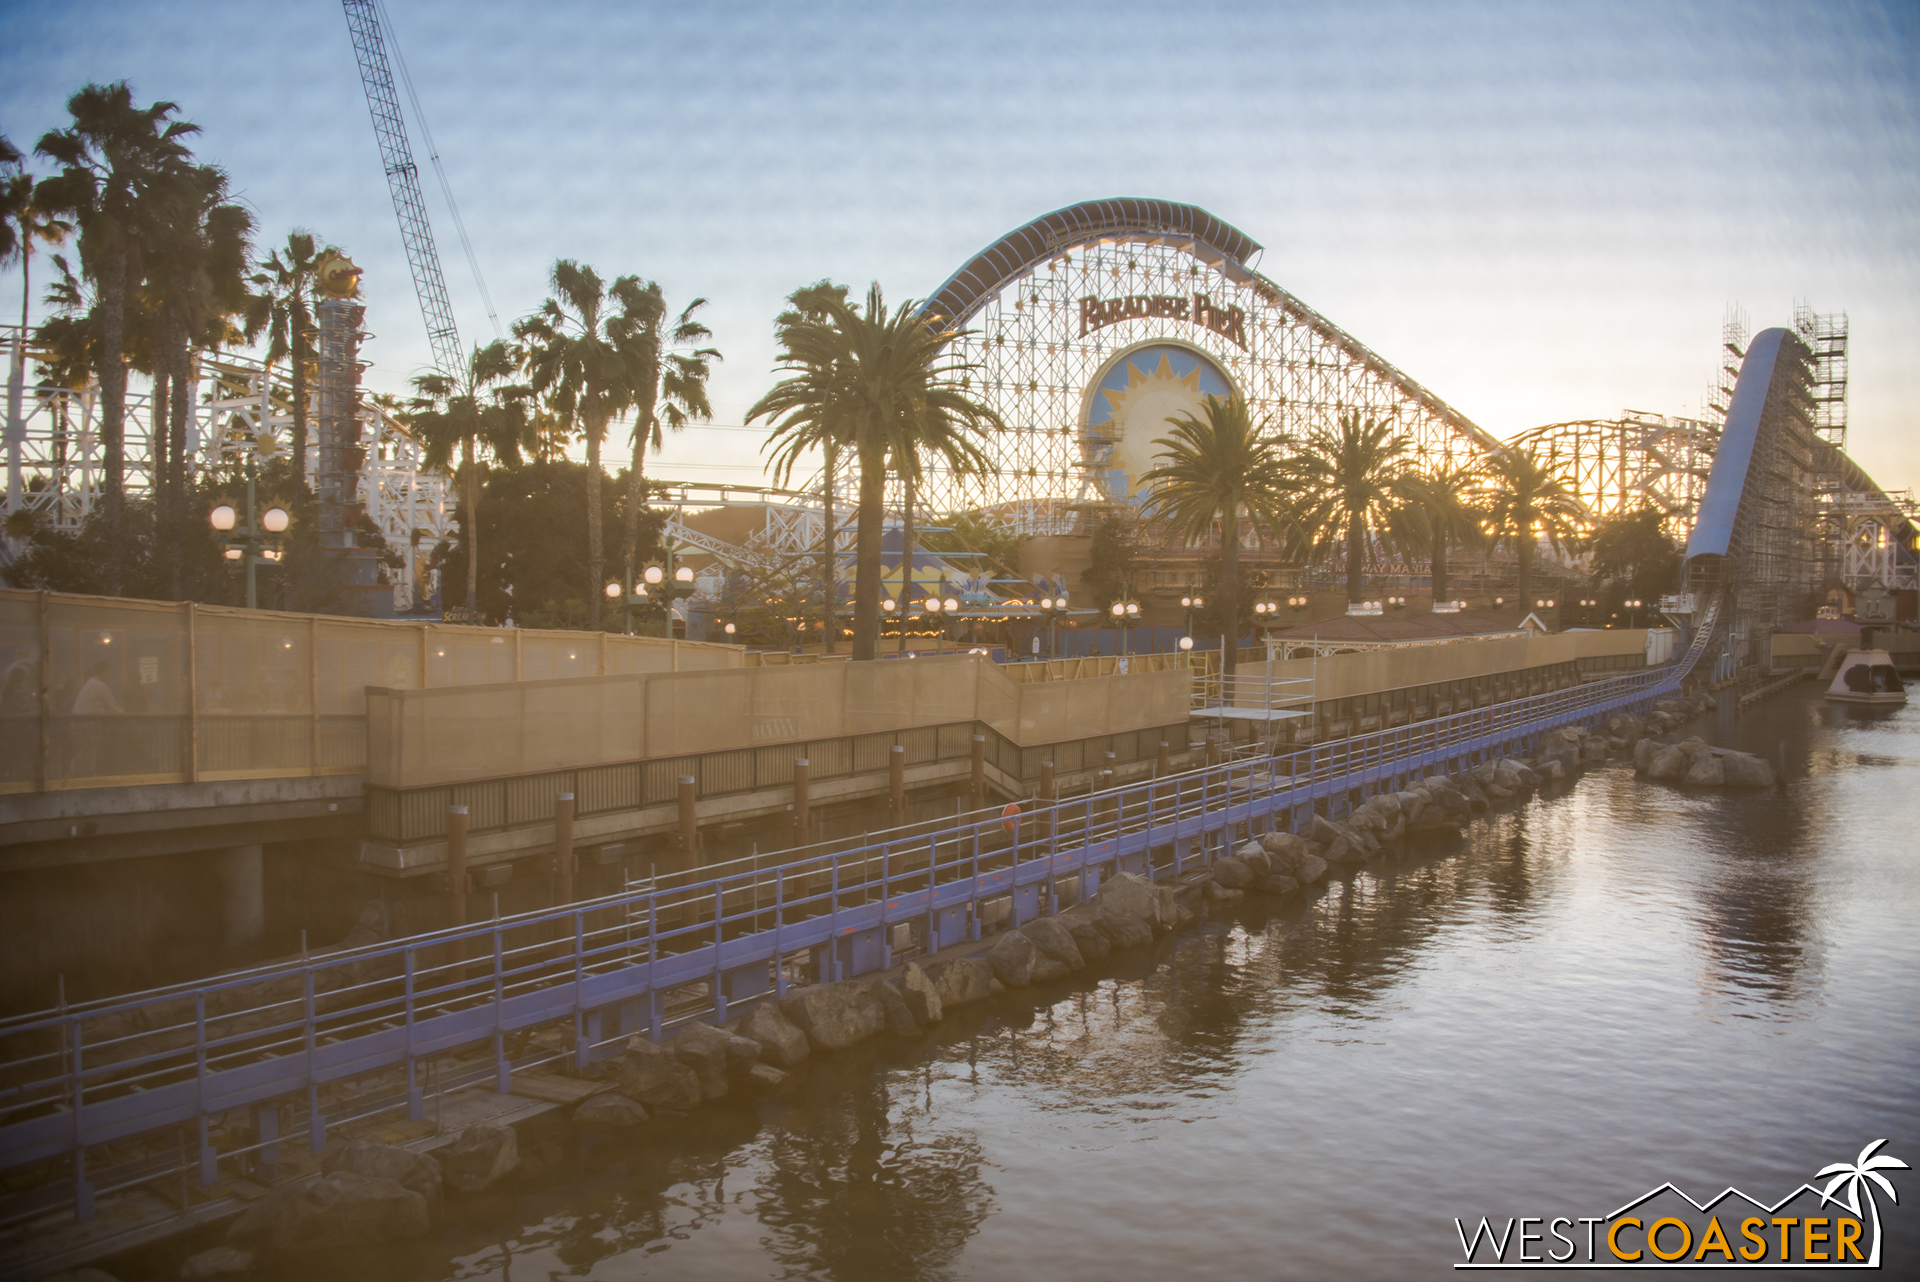 Through the scrim, one can see work happening at Screamin'.